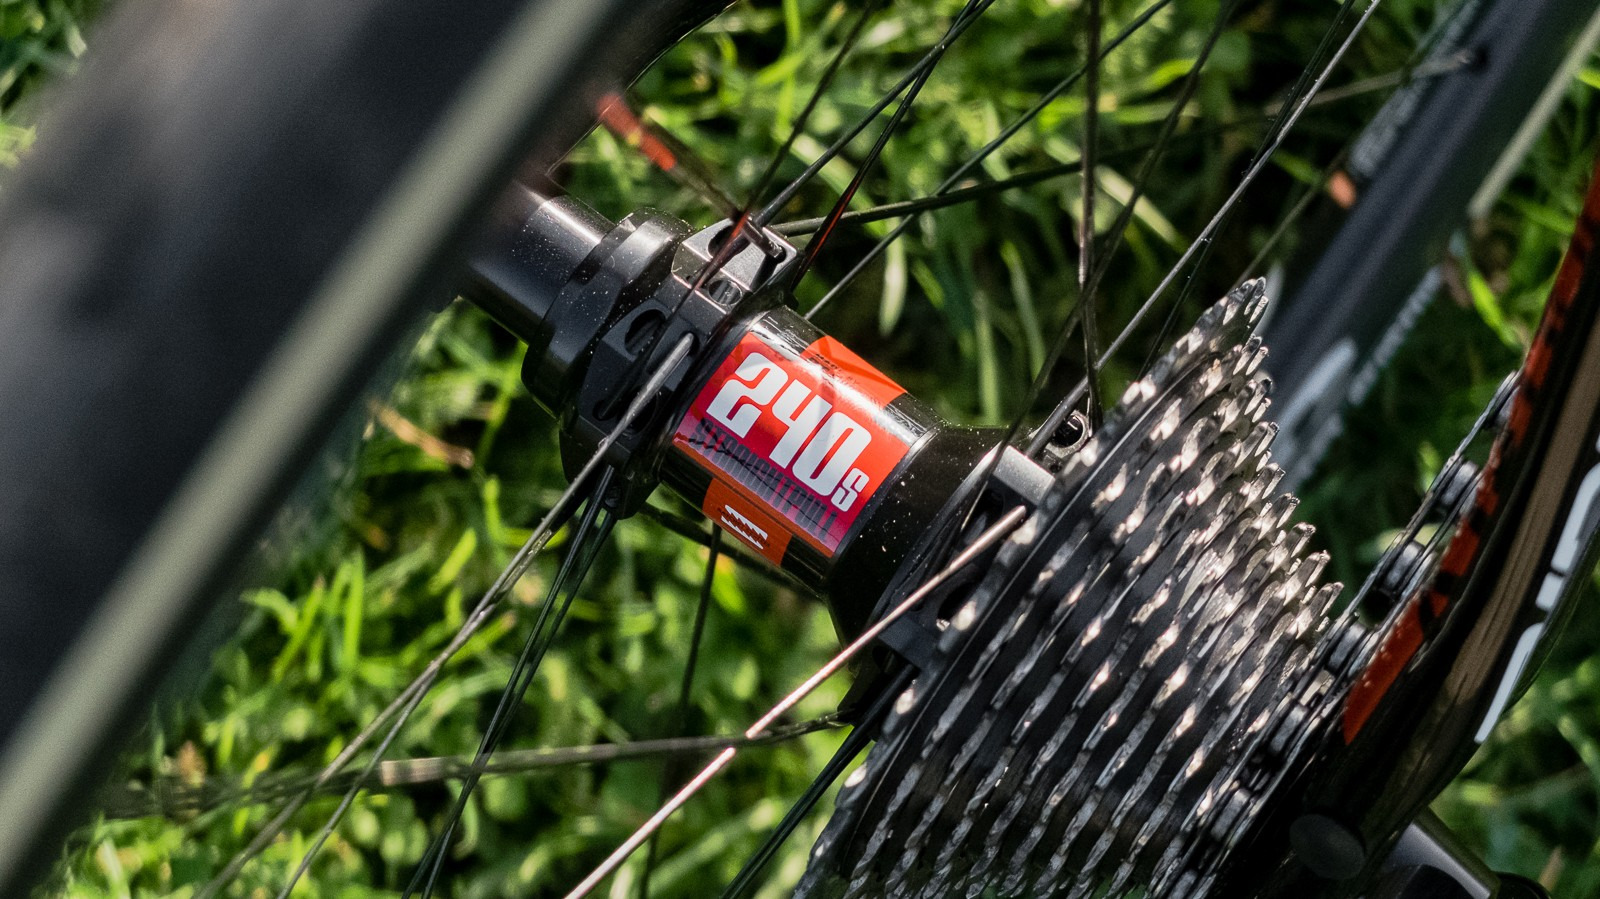 The Forza C30 wheels spin on ultra-dependable DT Swiss 240s hubs